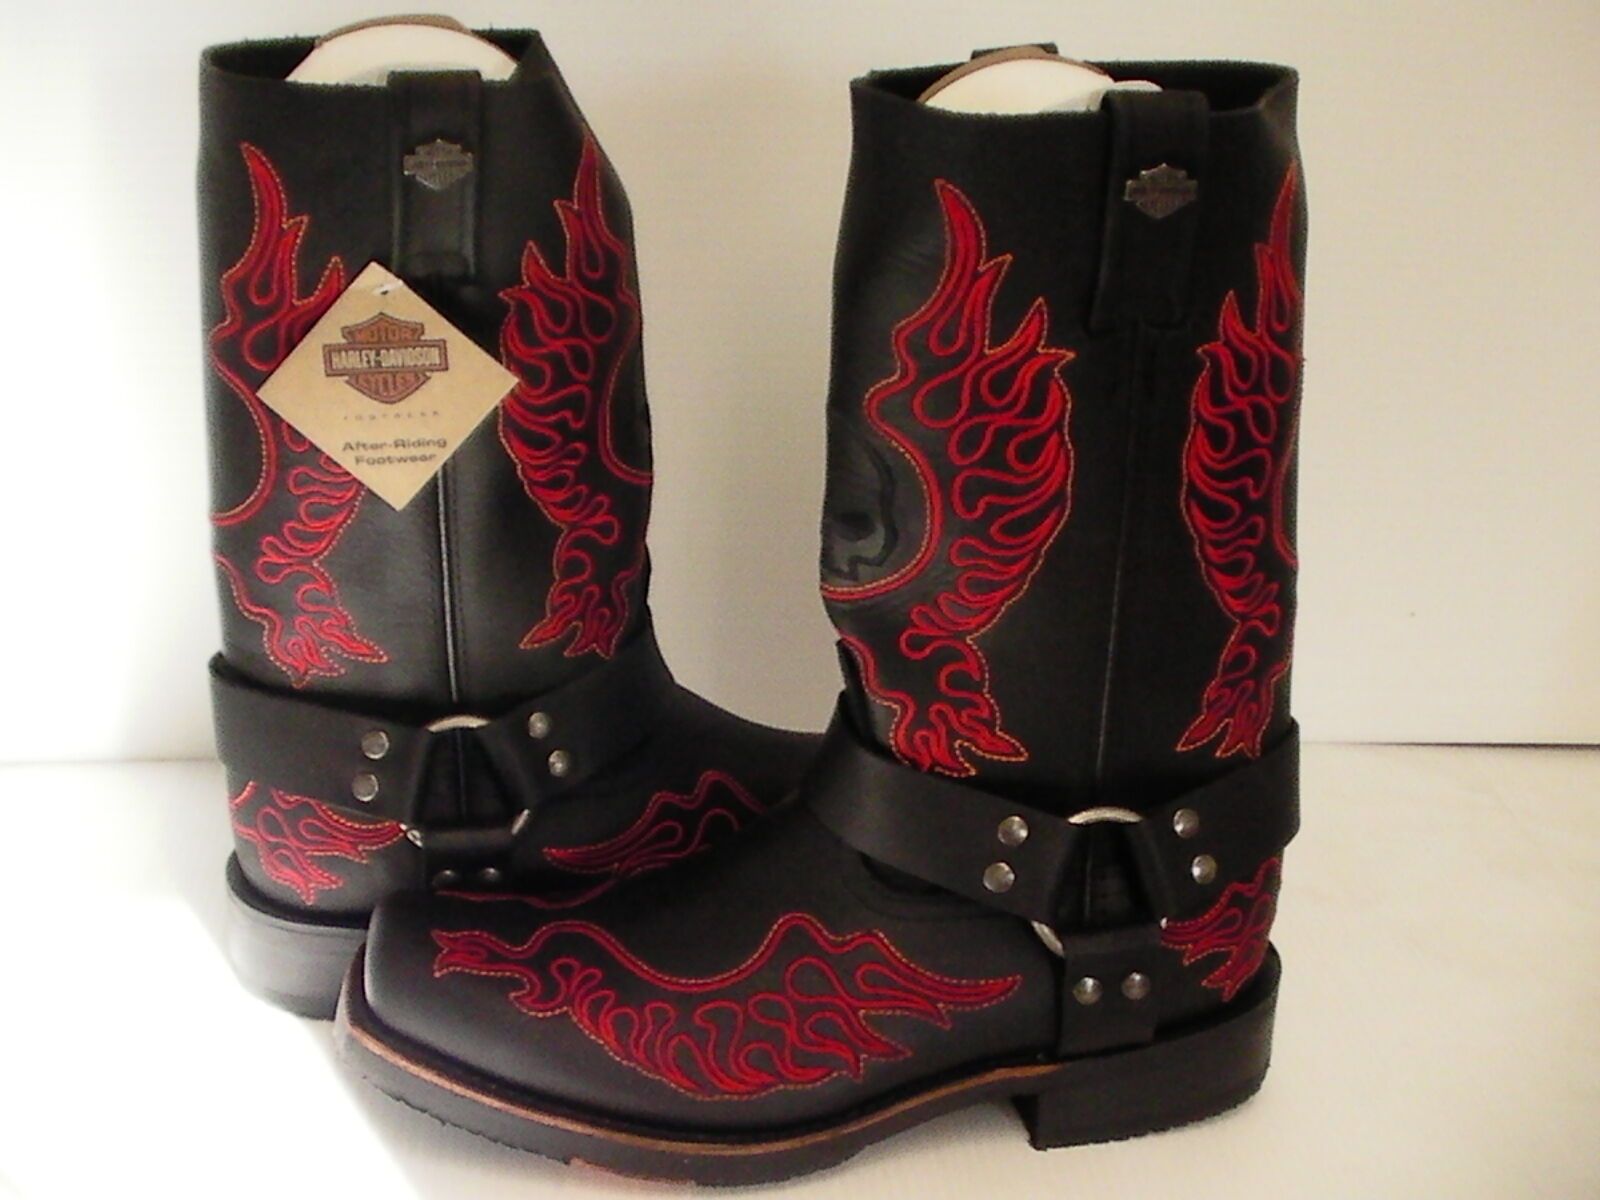 Mens Harley Davidson boots Slayton D93141 leather black oil resisting size 8.5